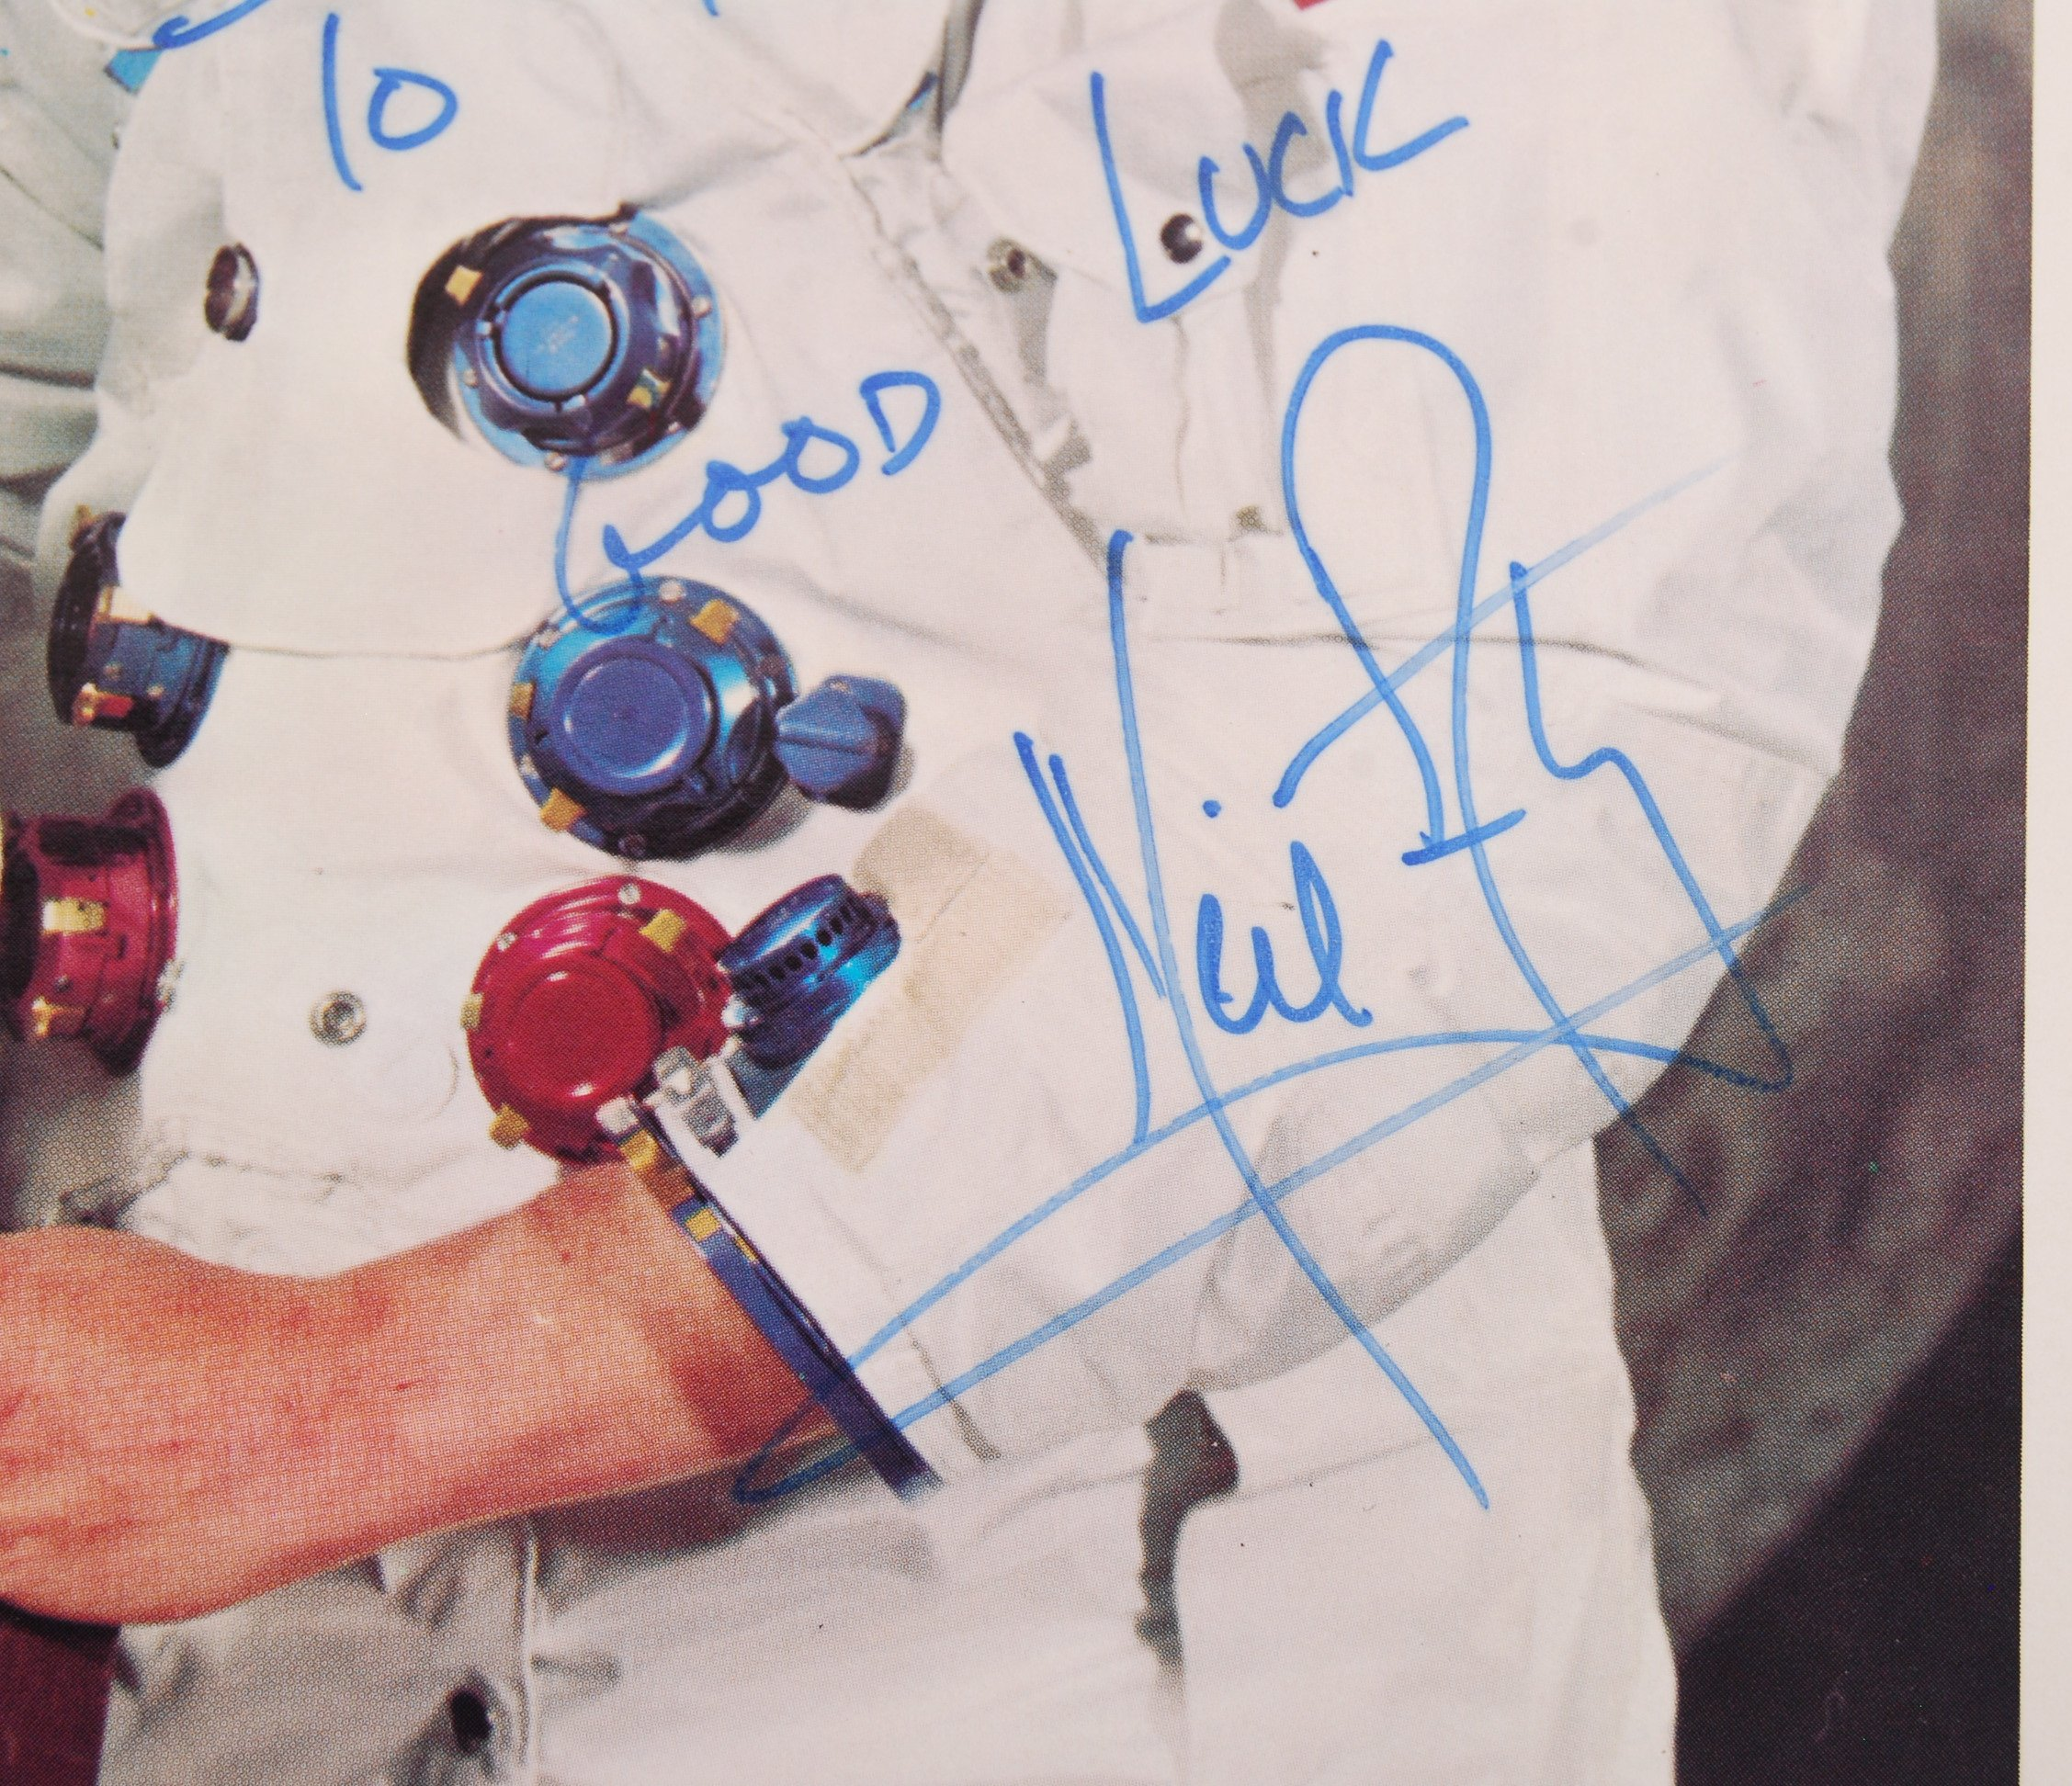 Lot 5 - INCREDIBLY RARE NEIL ARMSTRONG FIRST MAN ON THE MOON AUTOGRAPHED PHOTO